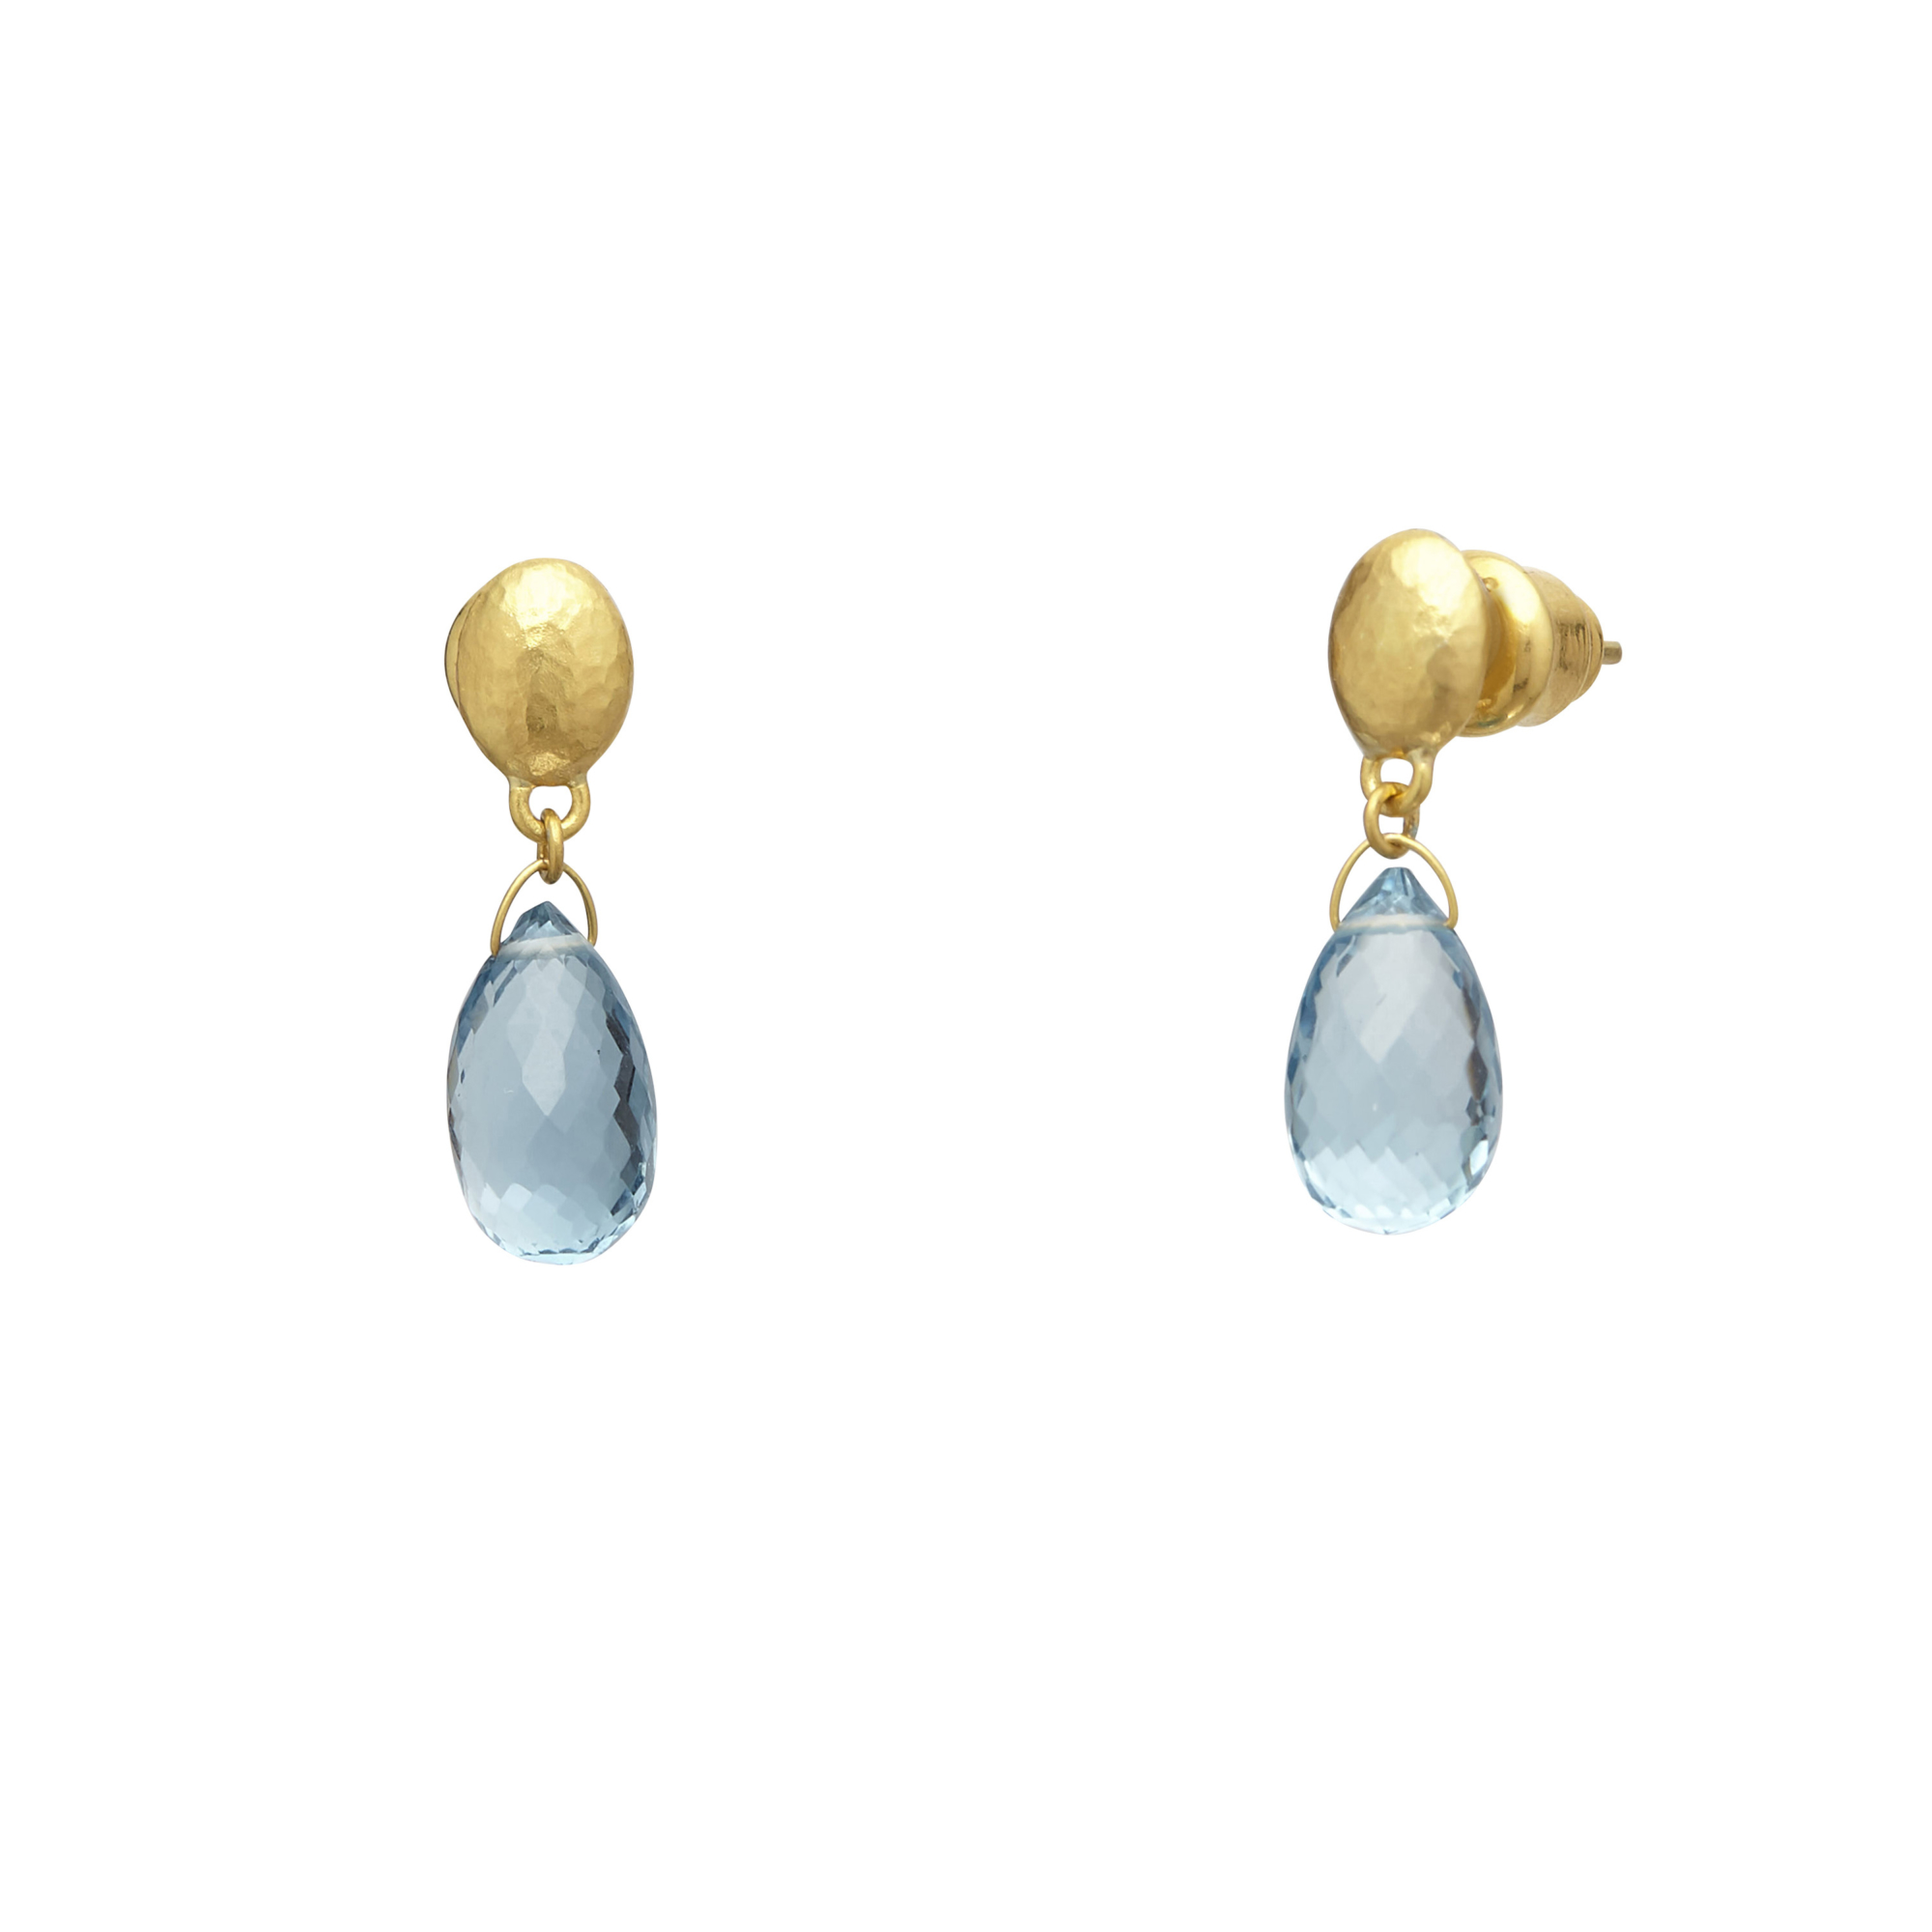 Gurhan 24K Yellow Gold 8.77cts Blue Topaz Gold Earrings with Stones E-U25021-BT